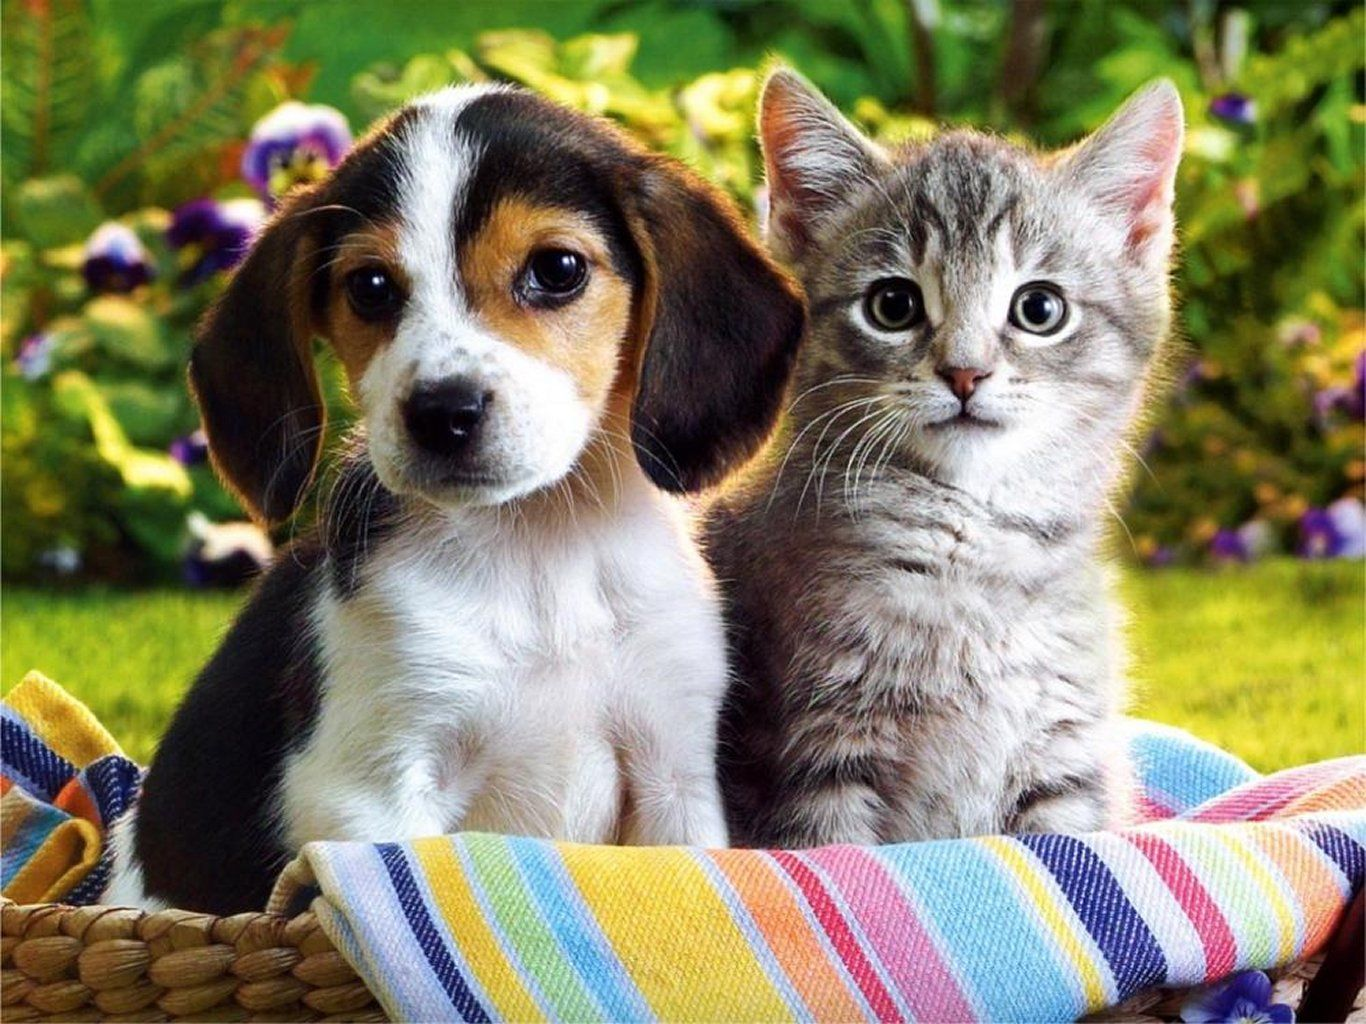 1366x1024 - Cute Puppy and Kitten 7